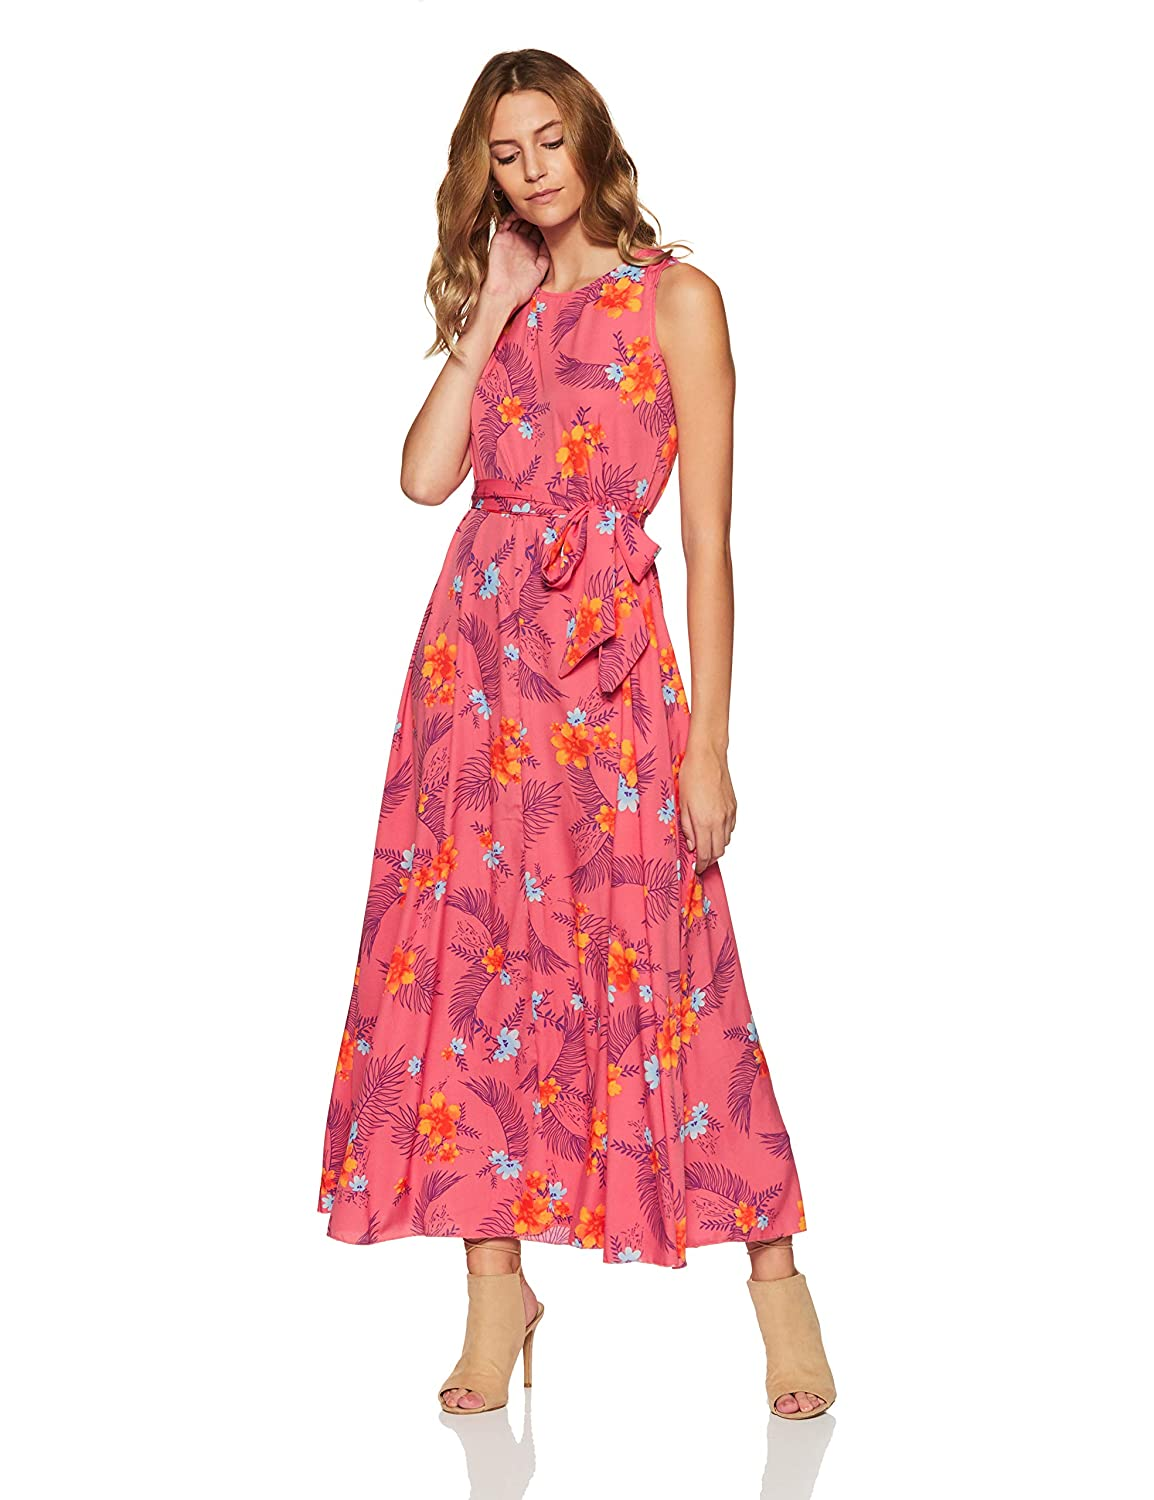 Min 60% off  on woman's clothing and accessories